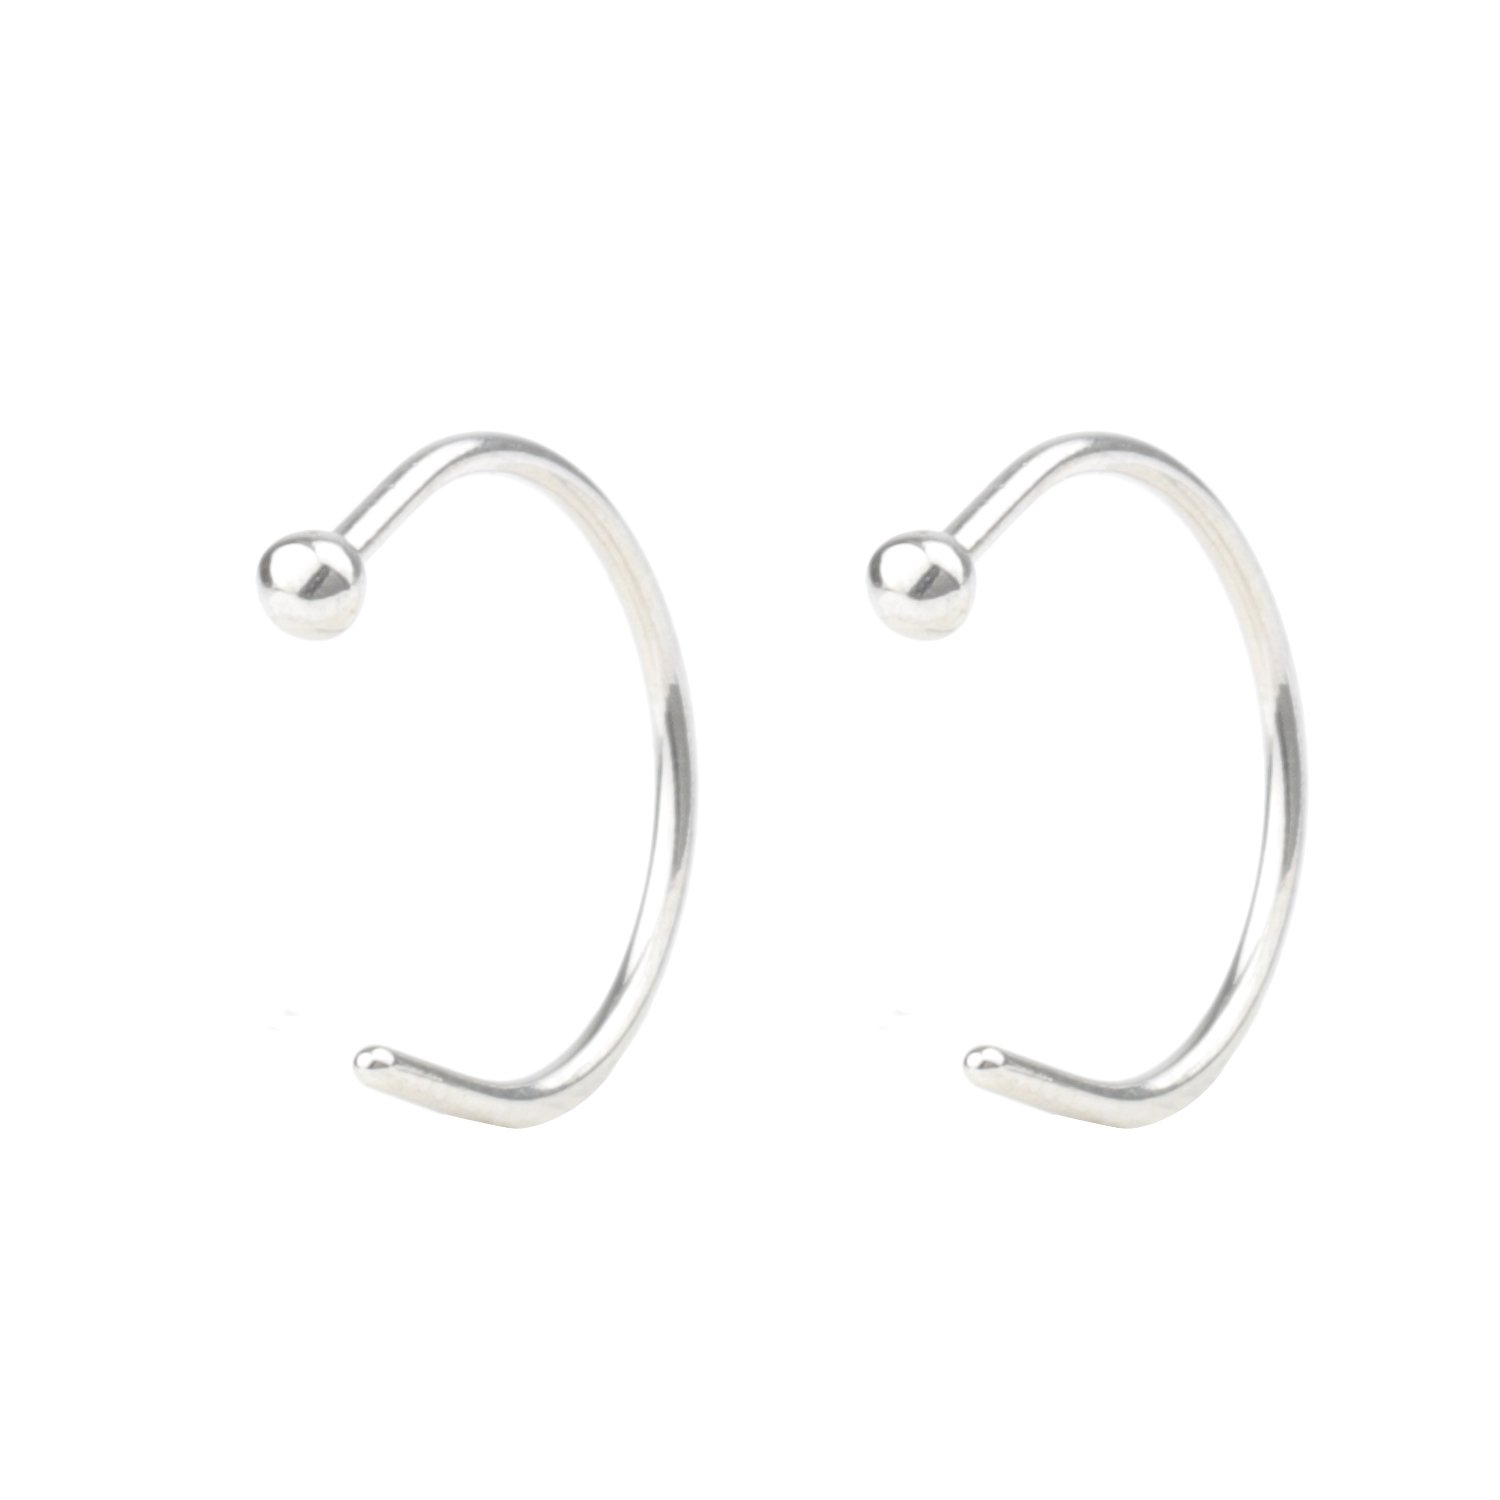 DRM 2-4pcs 18G Stainless Steel Earrings Nose Hoop Nose Ring Body Jewelry Piercing 2mm Ball 8mm